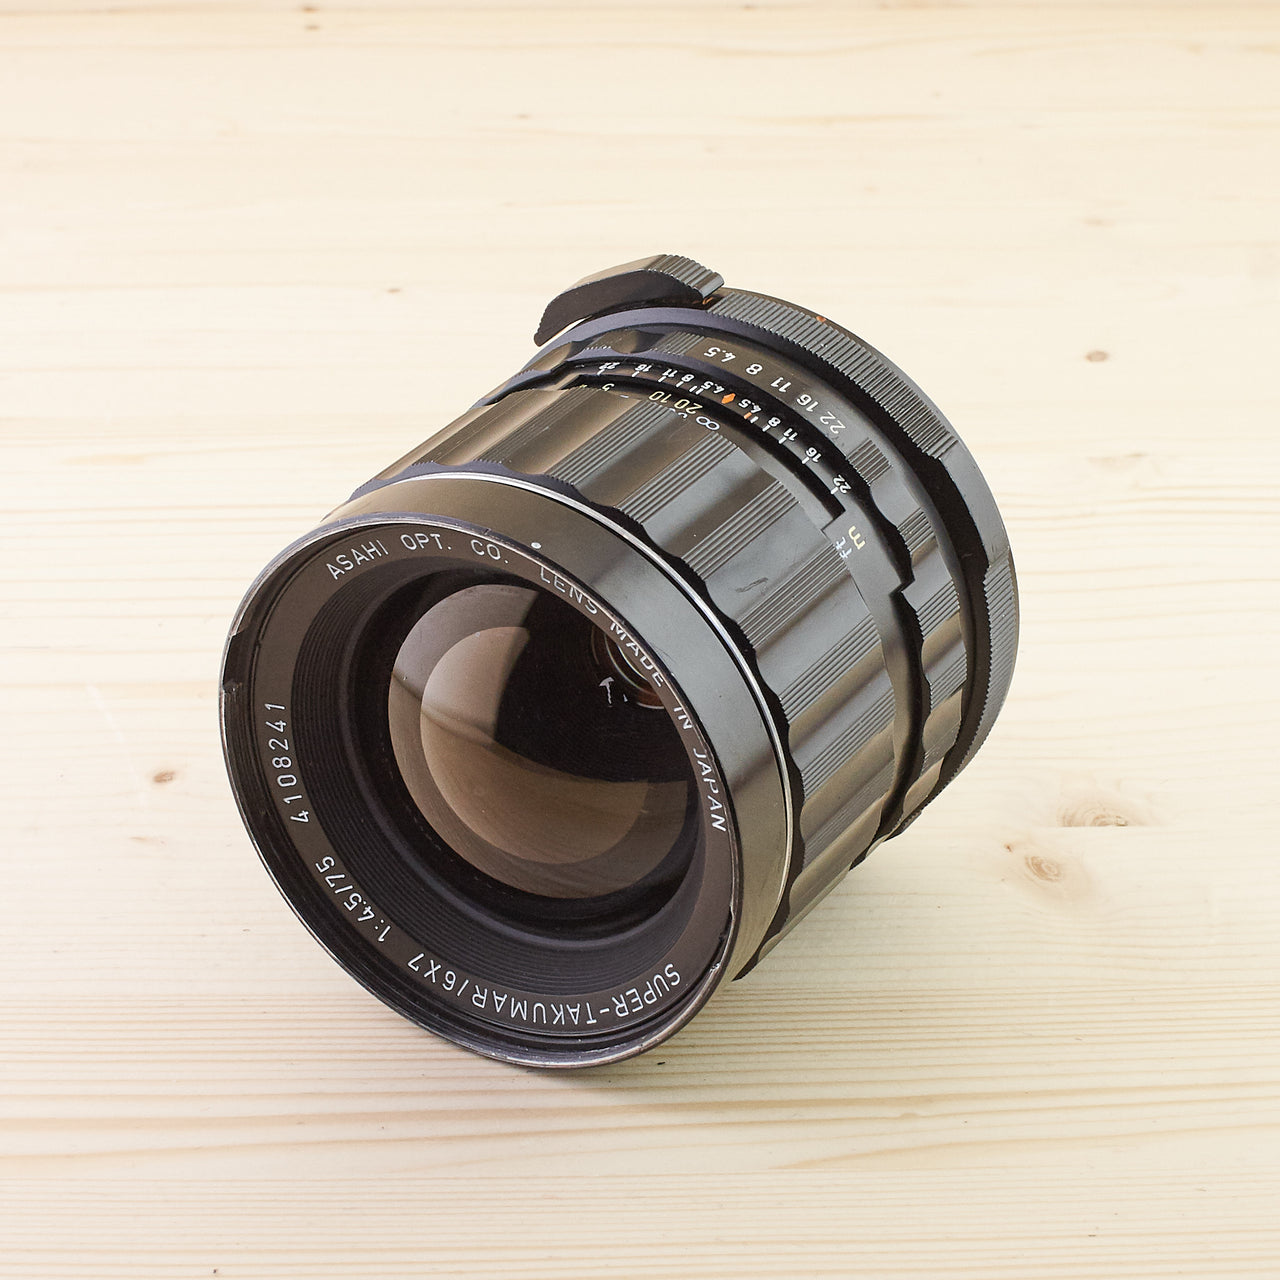 Pentax 67 75mm f/4.5 Avg - West Yorkshire Cameras